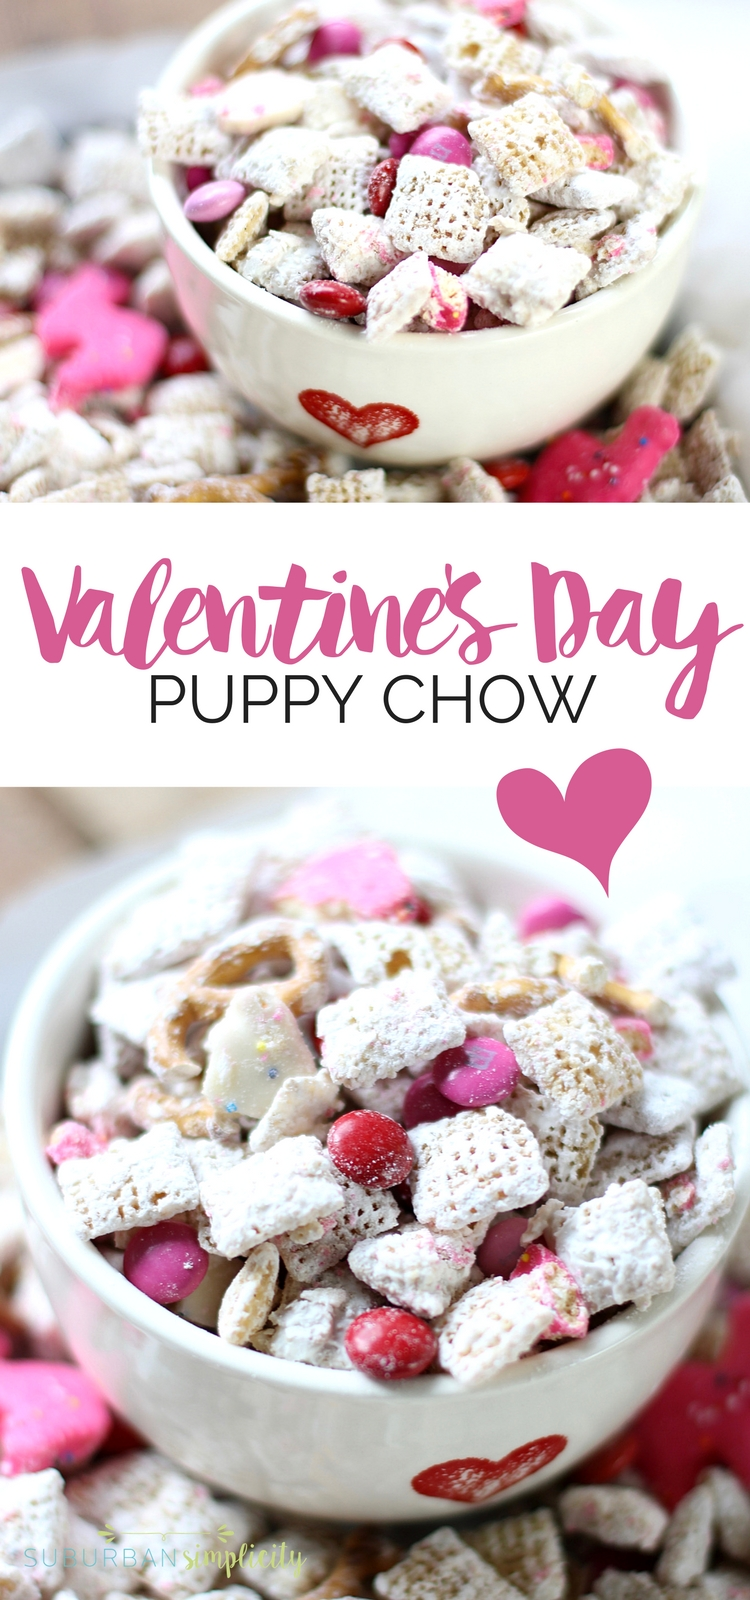 Valentine's Day Puppy Chow (aka muddy buddies) is the perfect treat for the holiday. An amazing combination of salty and sweet that's kinda addictive! With a few simple ingredients you can munch on this delicious dessert in minutes. #valentinesday #muddybuddies